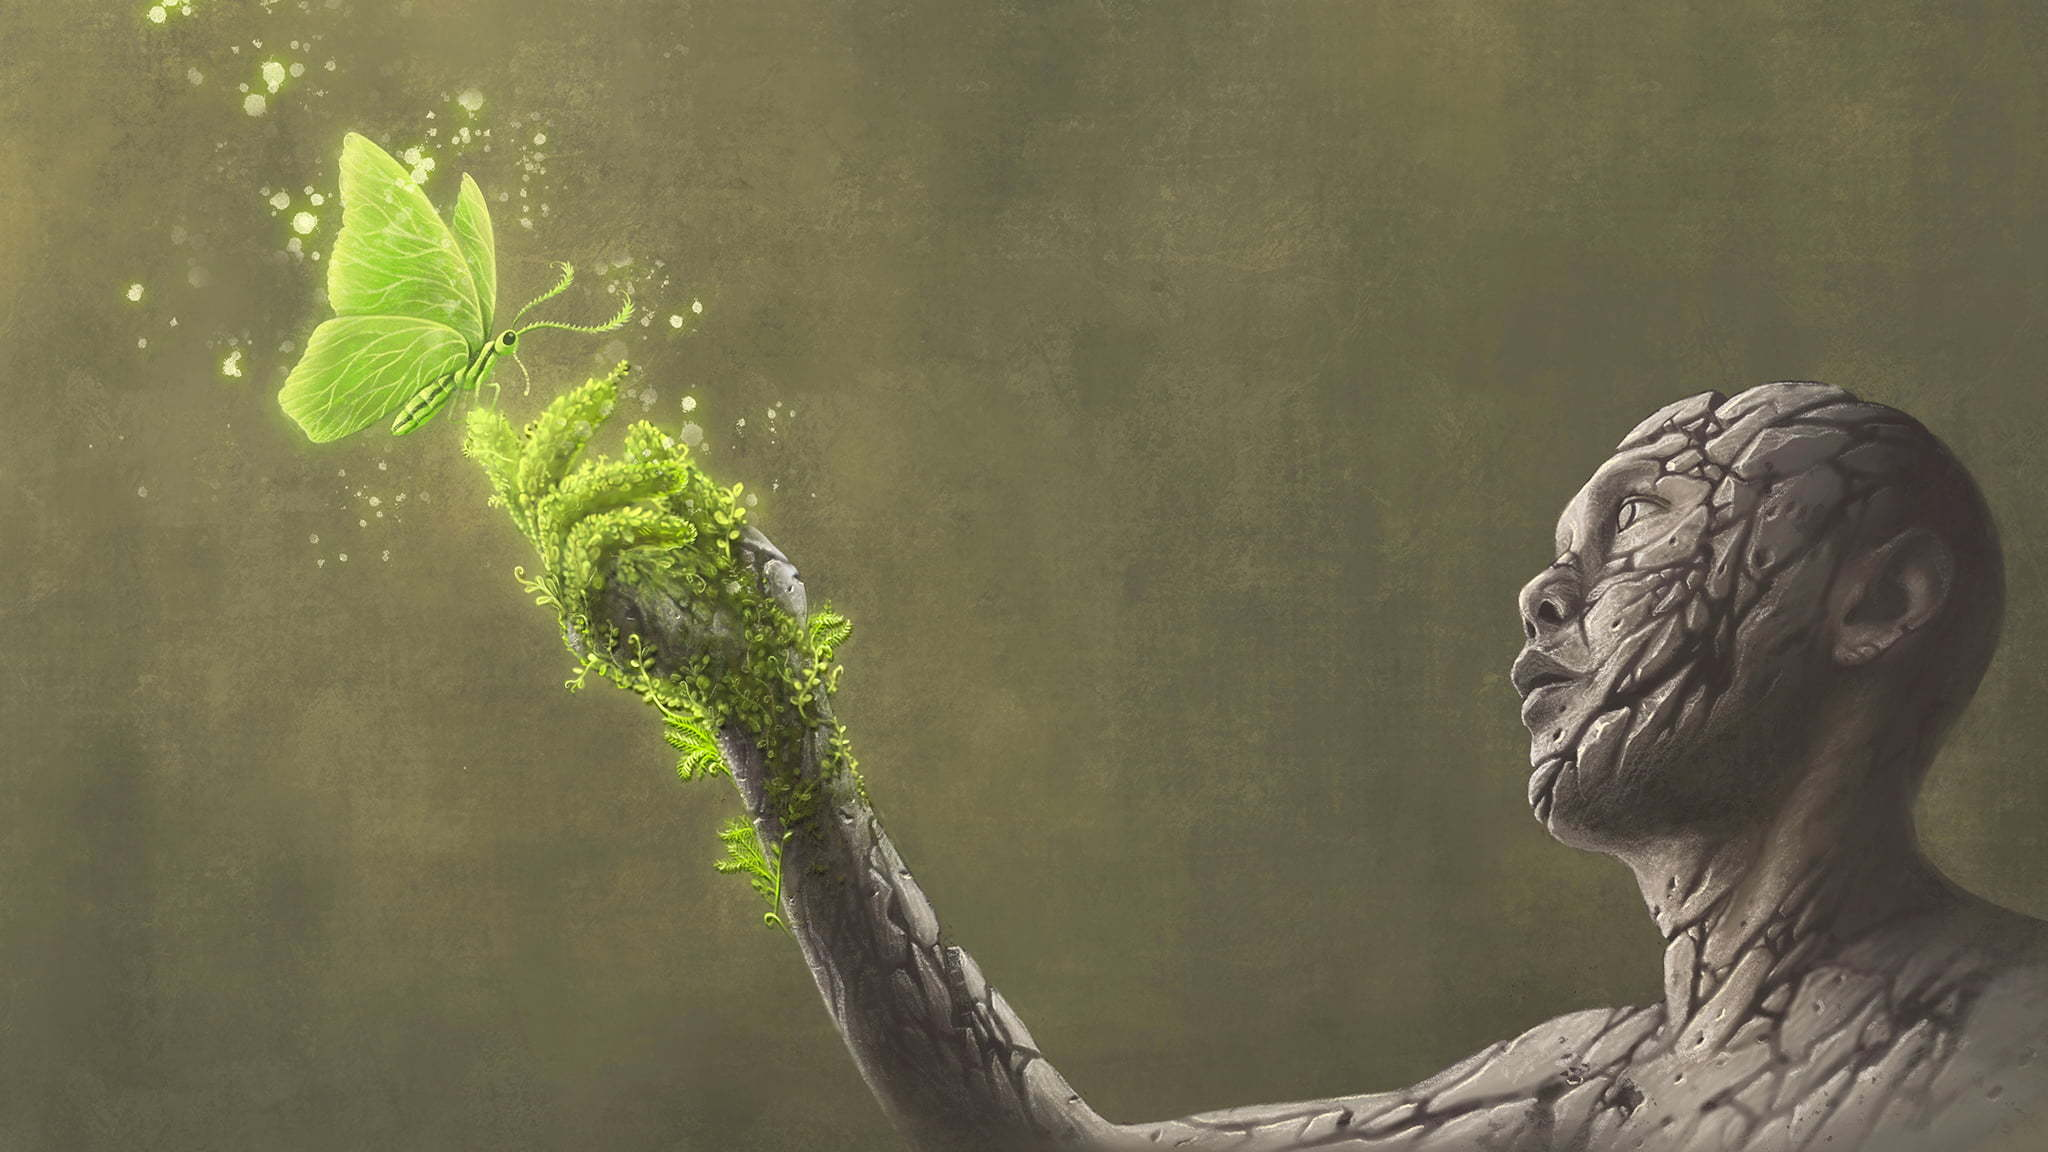 Surreal Illustration Of A Stone Man With Cracks And A Green Butterfly Landing On His Hand And Leaving Behind Green Moss To Symbolize Healing And Regrowth